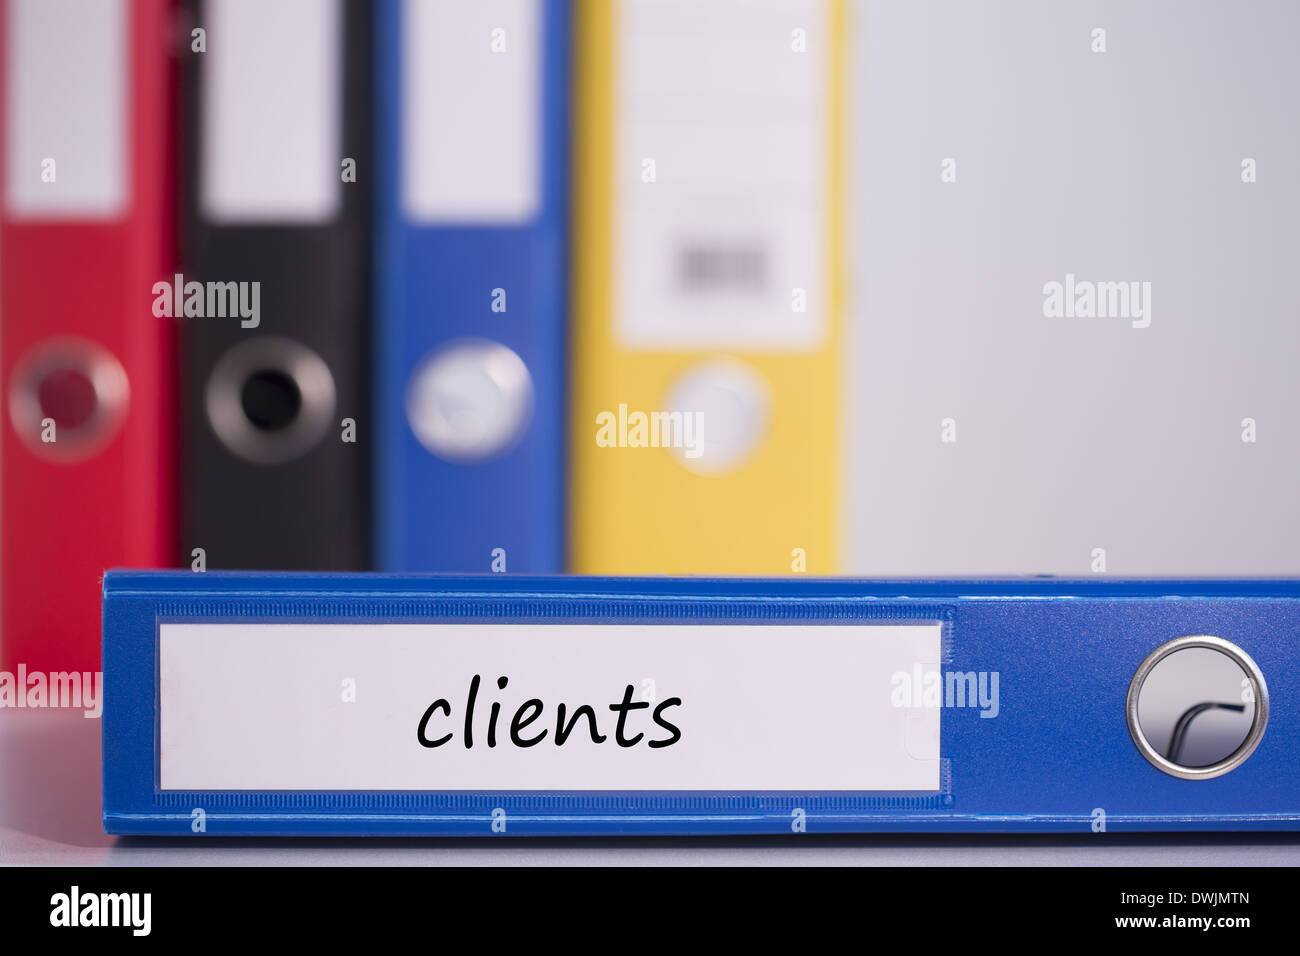 Clients on blue business binder - Stock Image